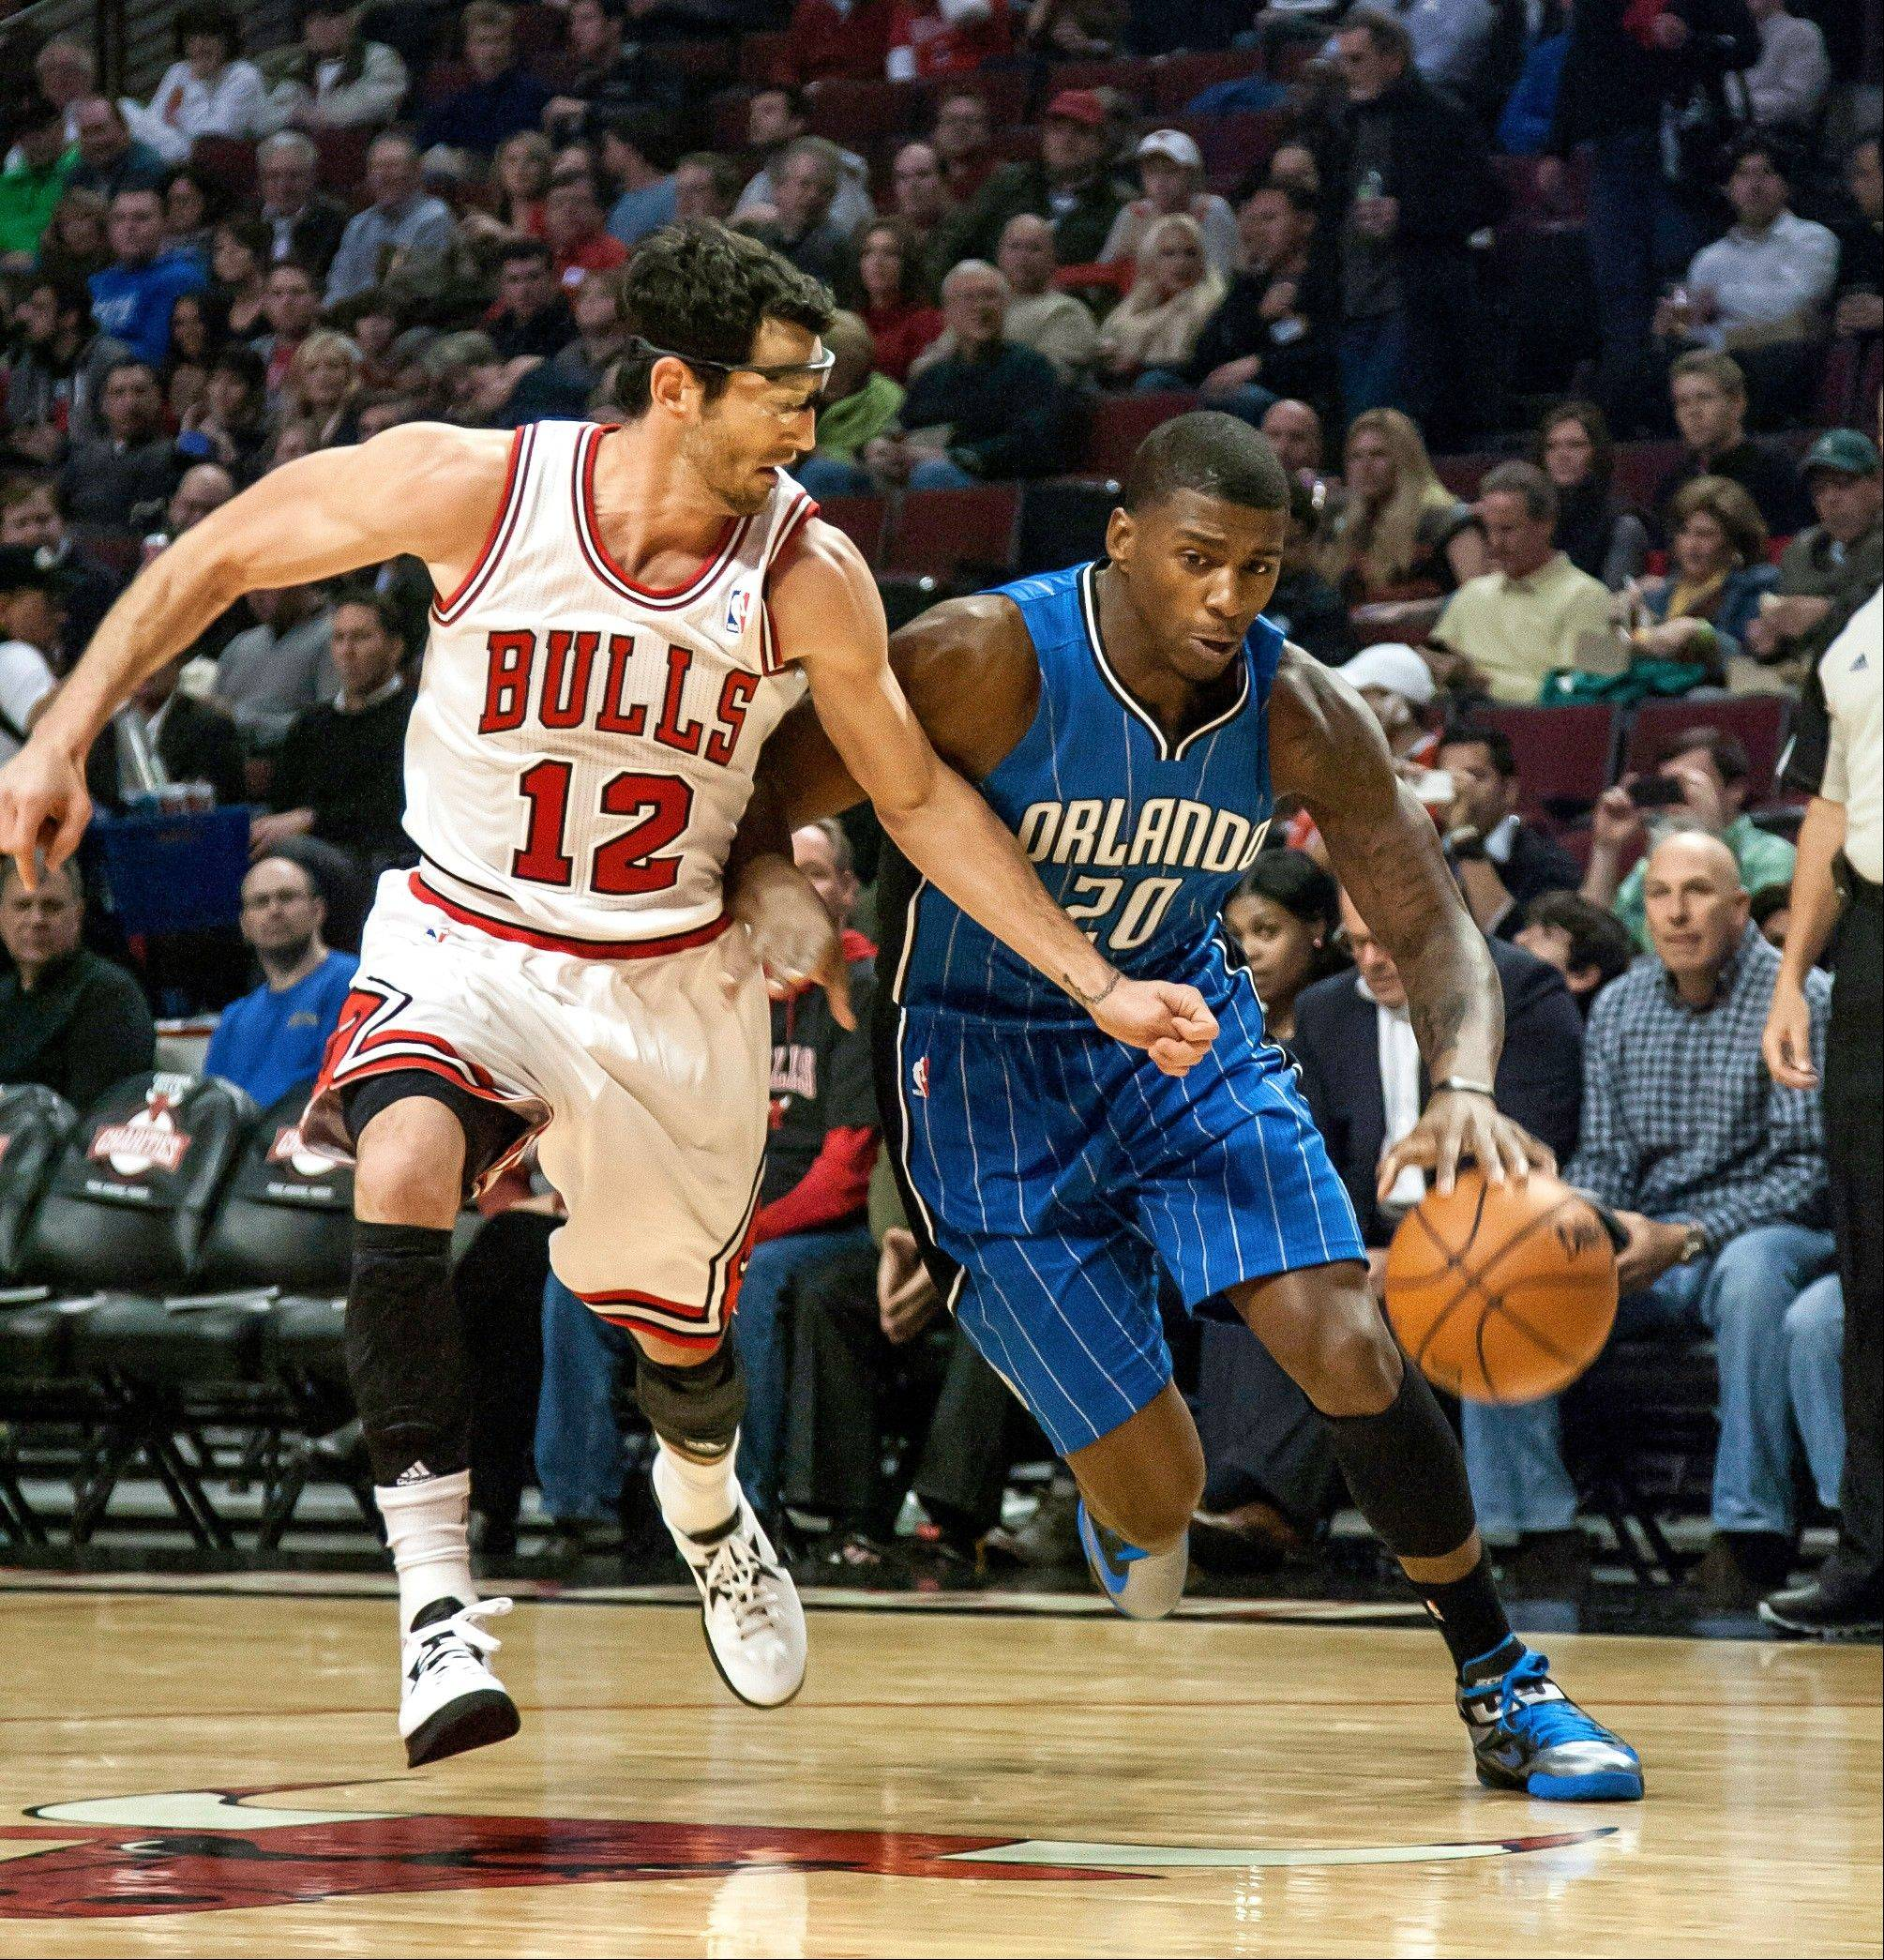 Bulls guard Kirk Hinrich tries to keep up with the Orlando Magic�s DeQuan Jones Tuesday during the first quarter at the United Center.